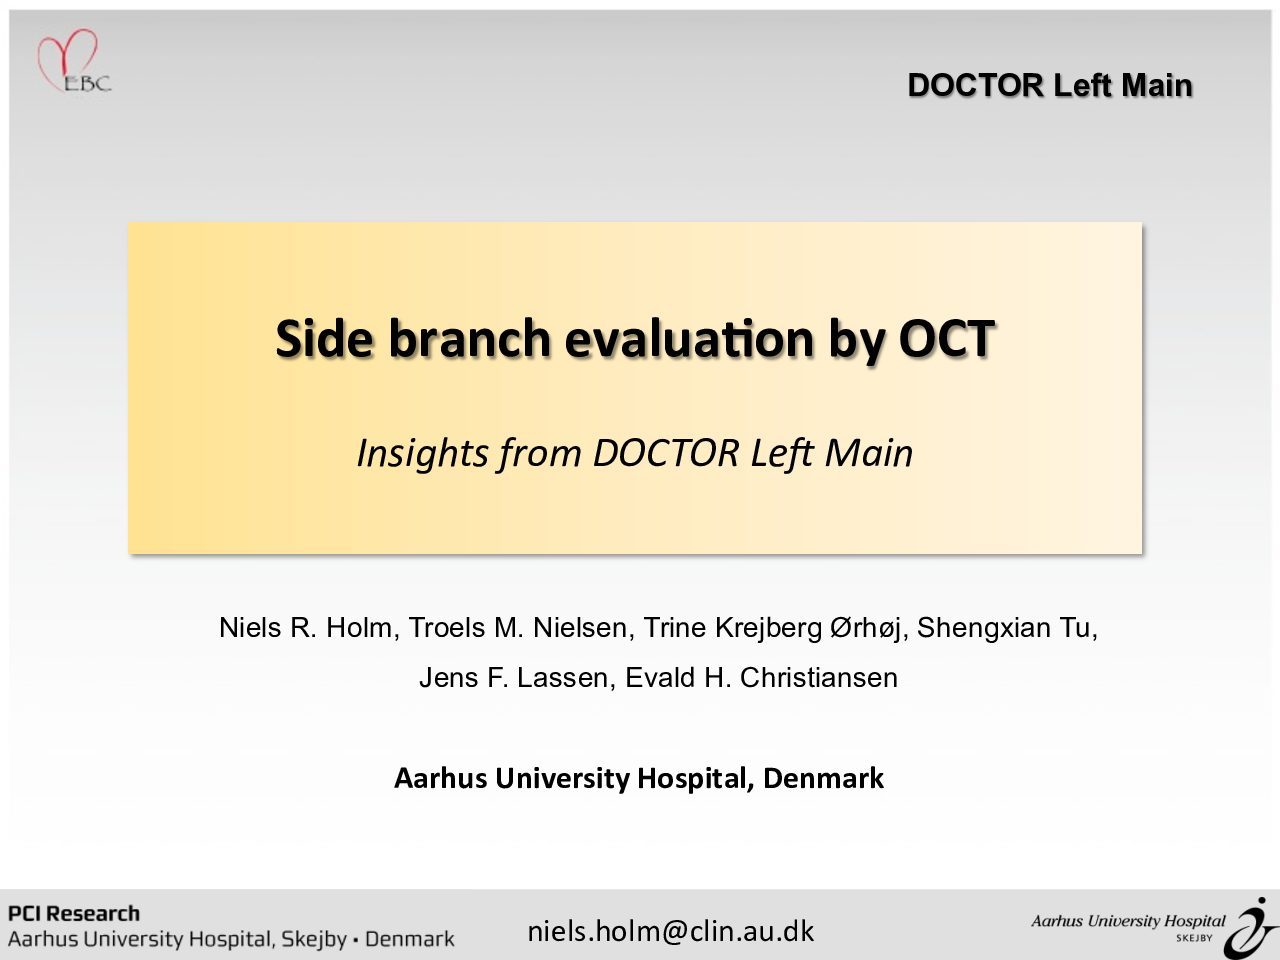 Side Branch Evaluation by OCT